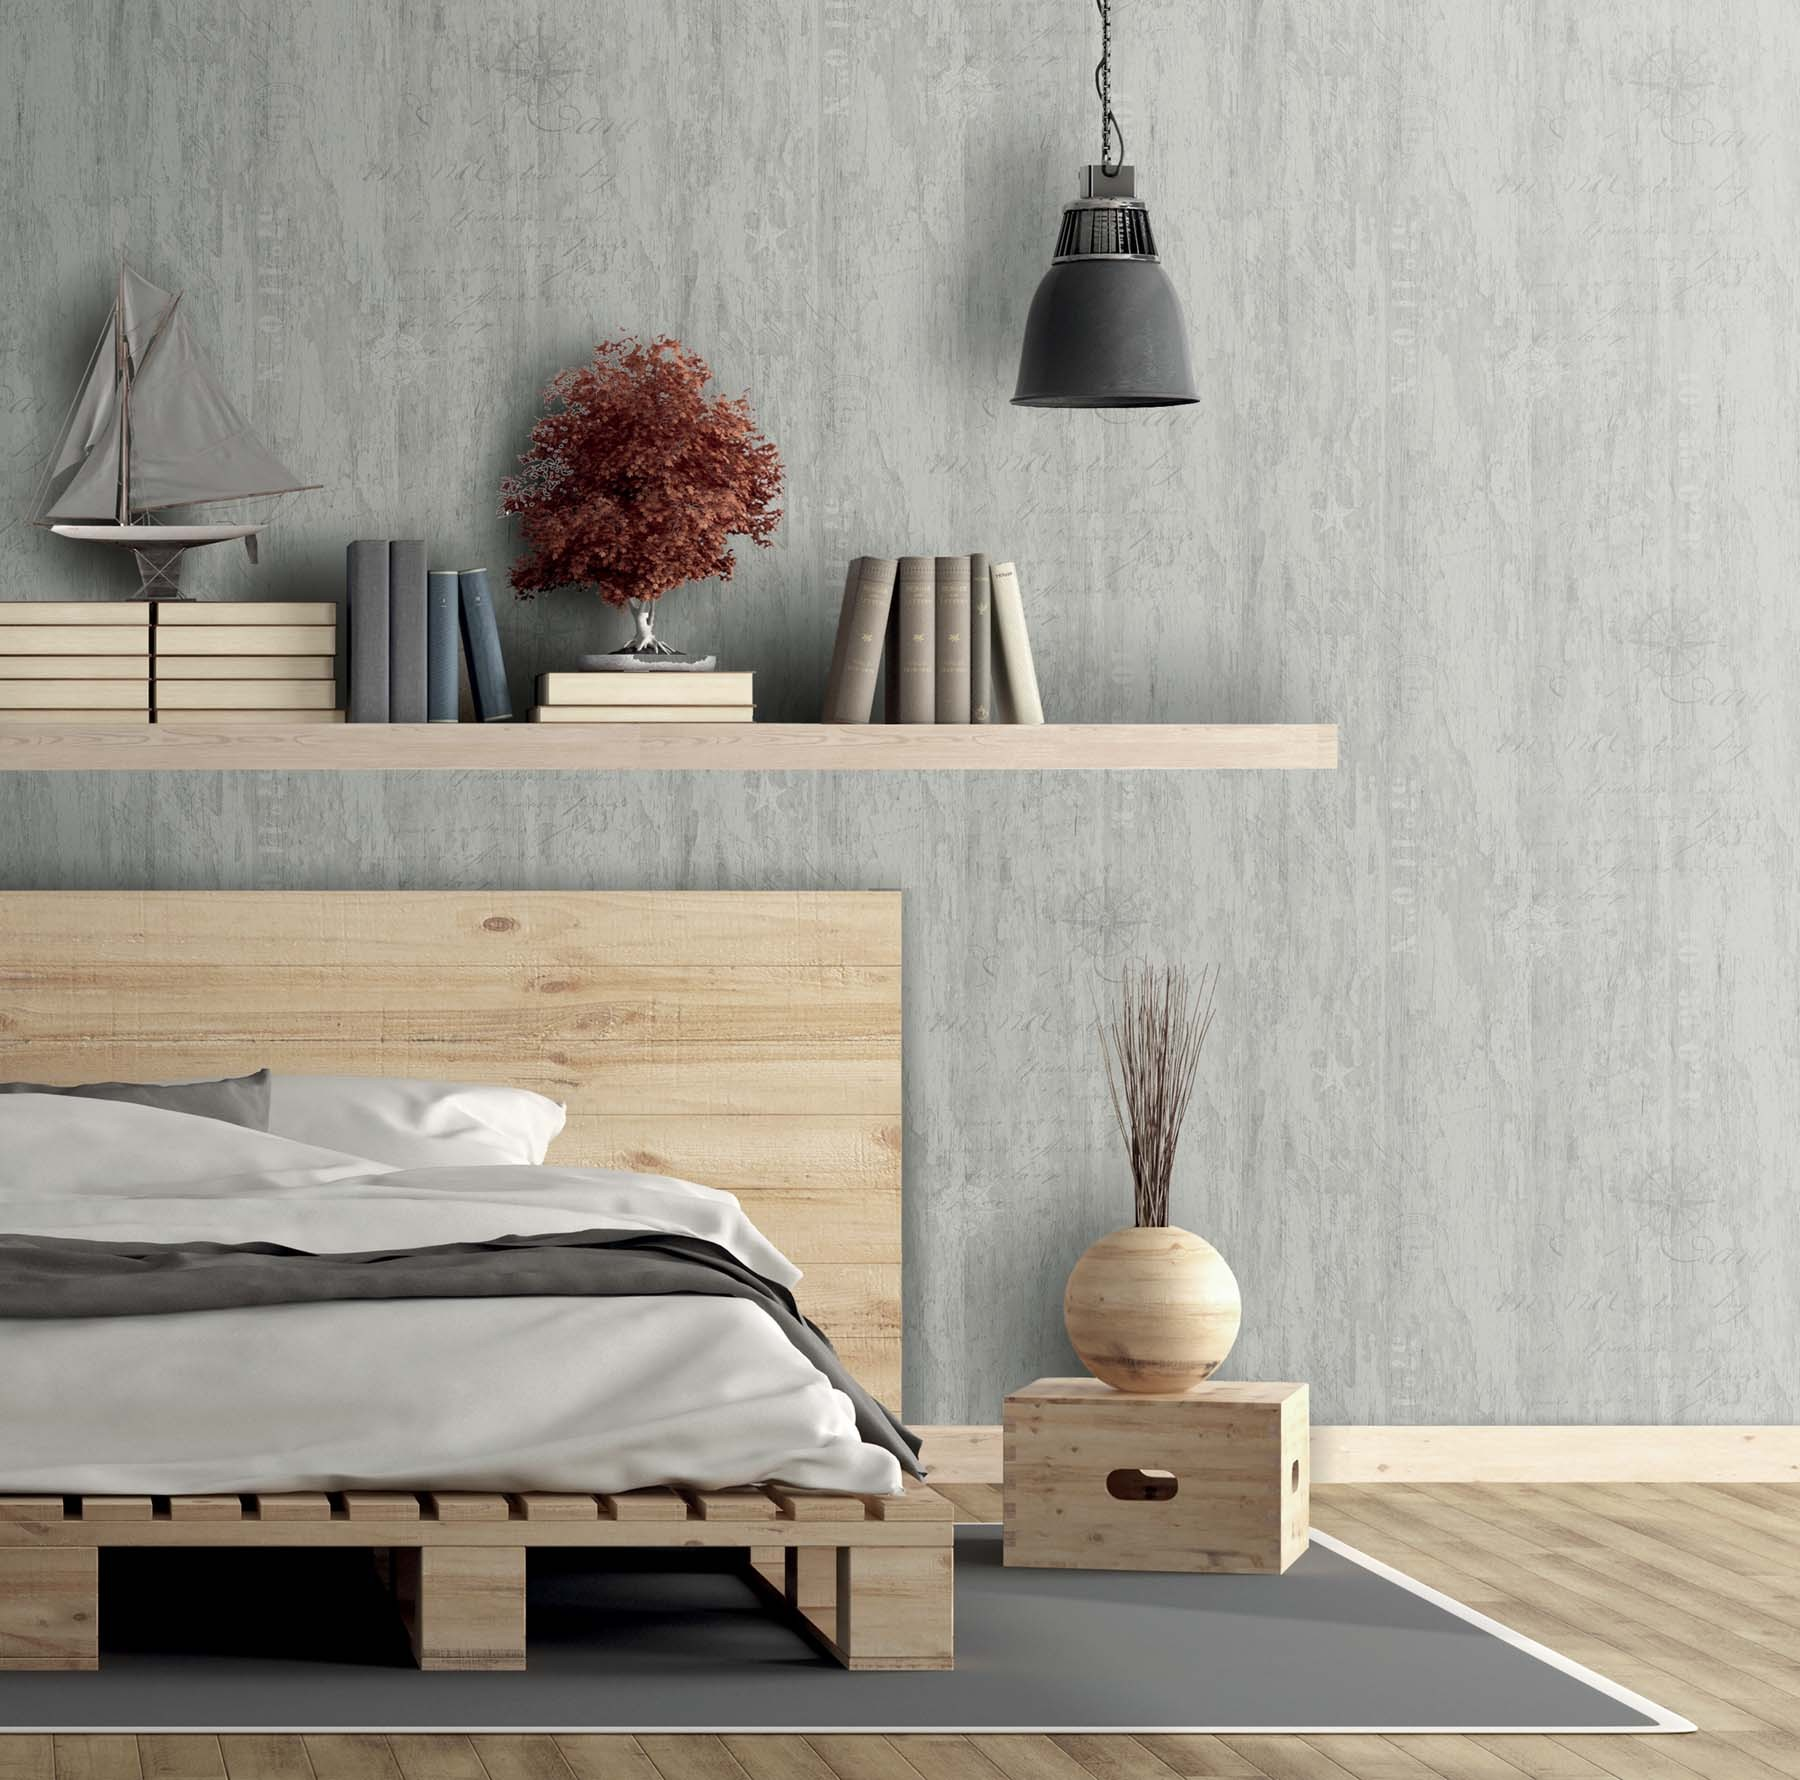 skagen tapeten rasch textil rechnungskauf gratisversand. Black Bedroom Furniture Sets. Home Design Ideas